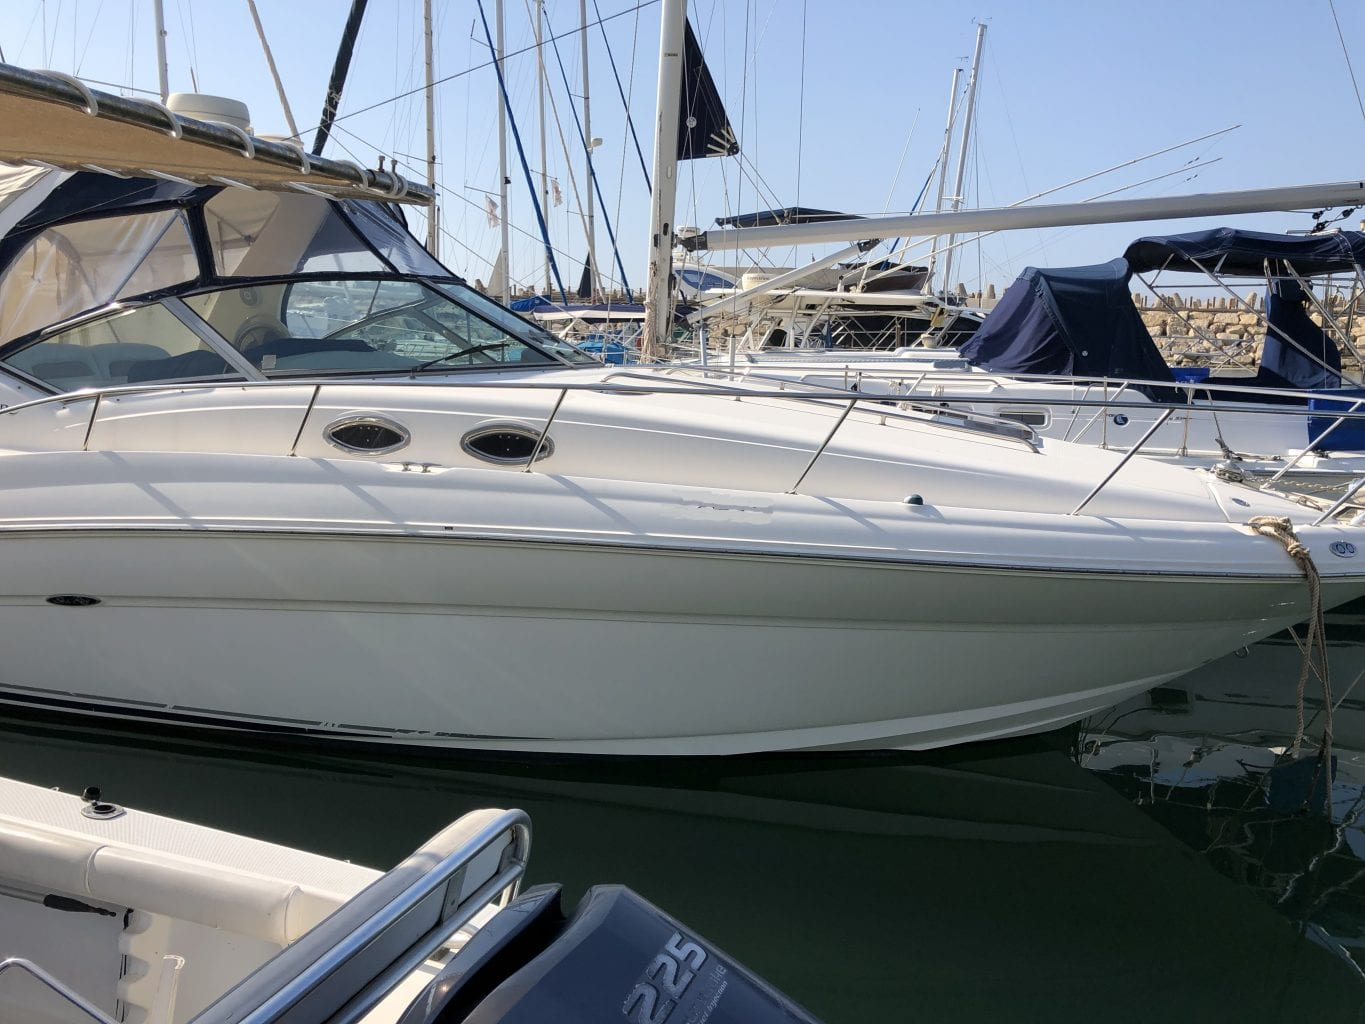 יאכטה מנועית SEA RAY 360 SUNDANCER יד שניה - סטרים יאכטות